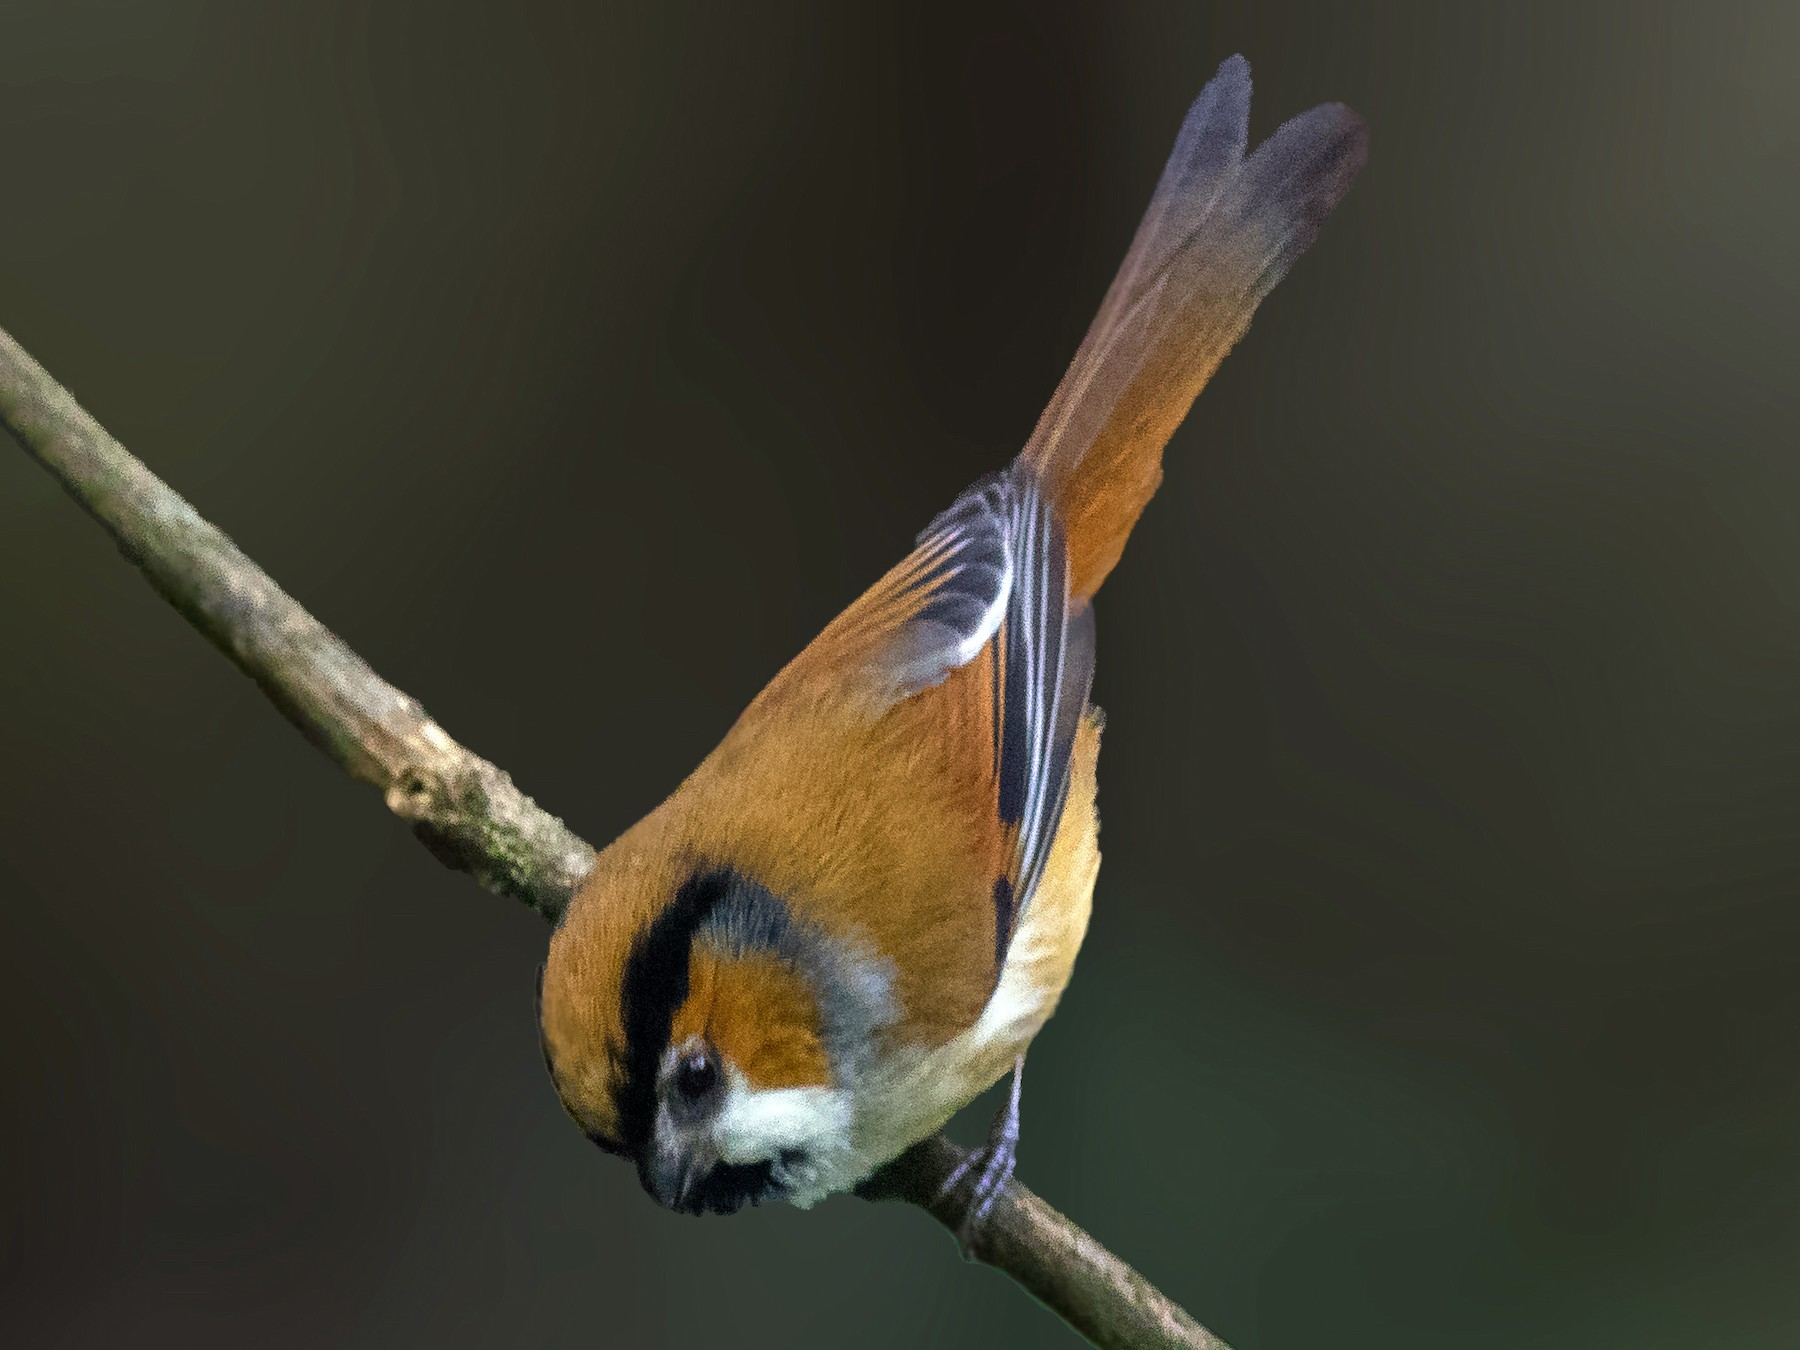 Black-throated Parrotbill - abhishek ravindra